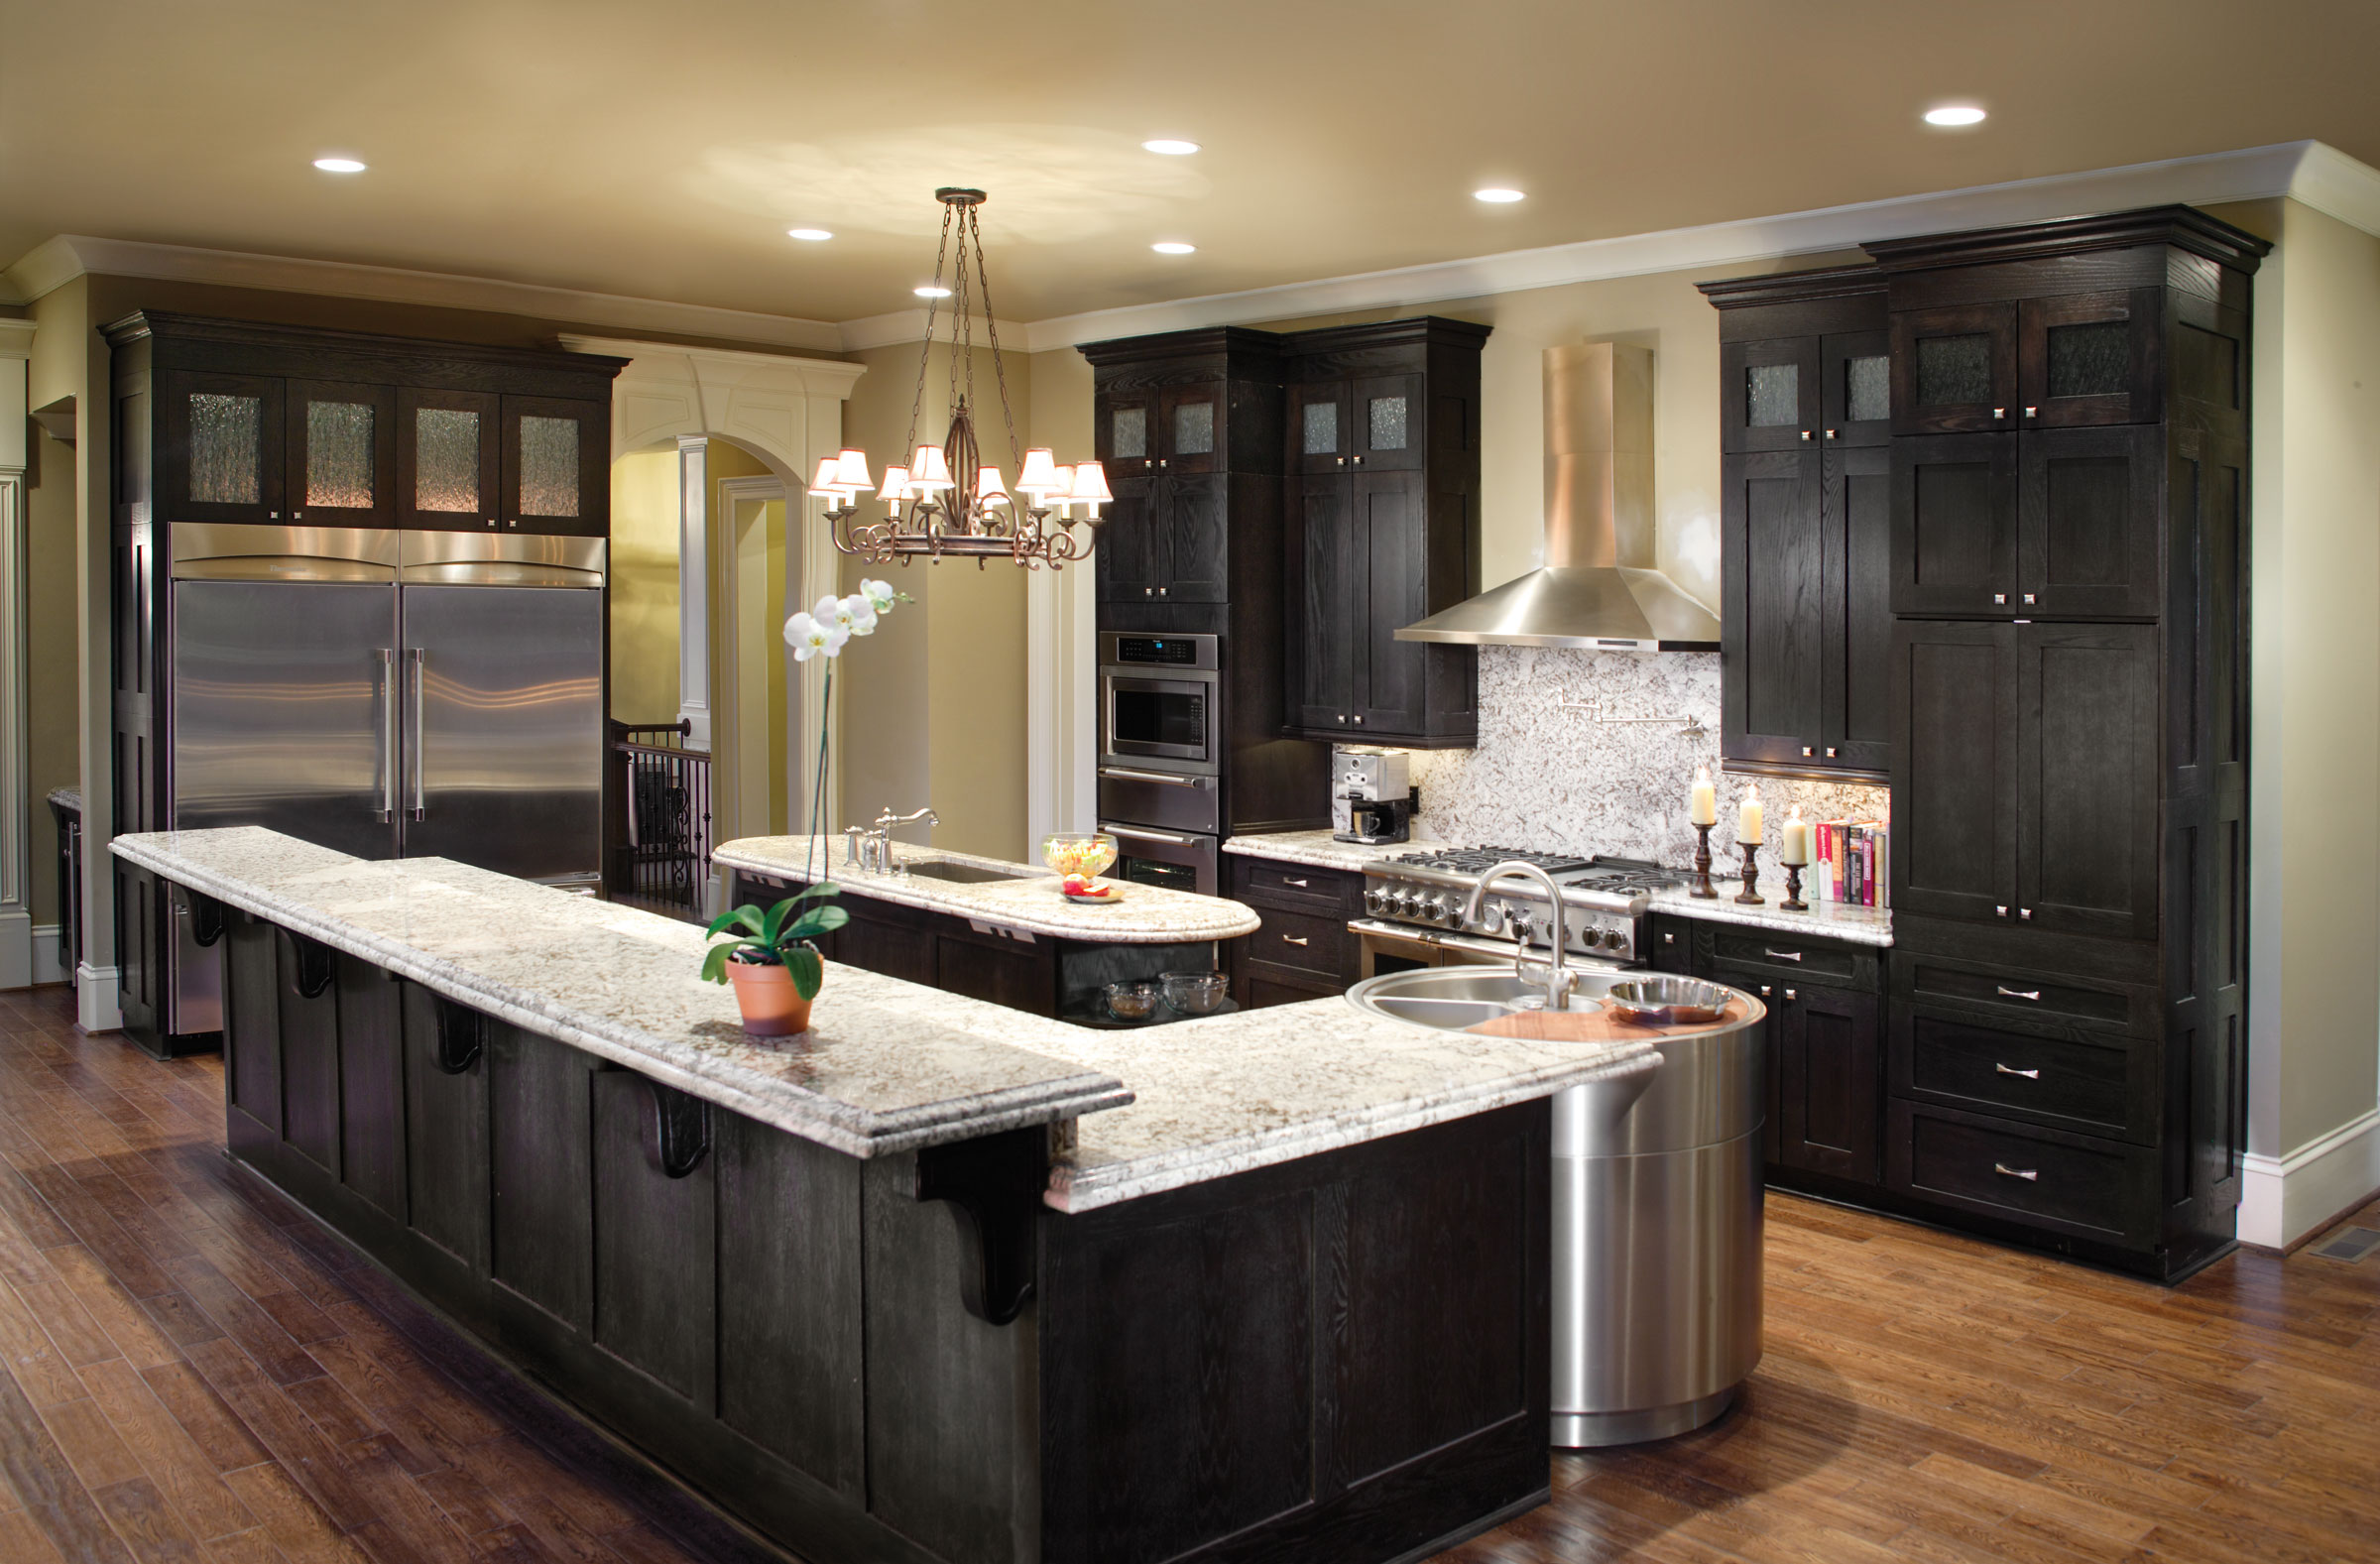 Custom Bathroom & Kitchen Cabinets | Phoenix - Cabinets by Design